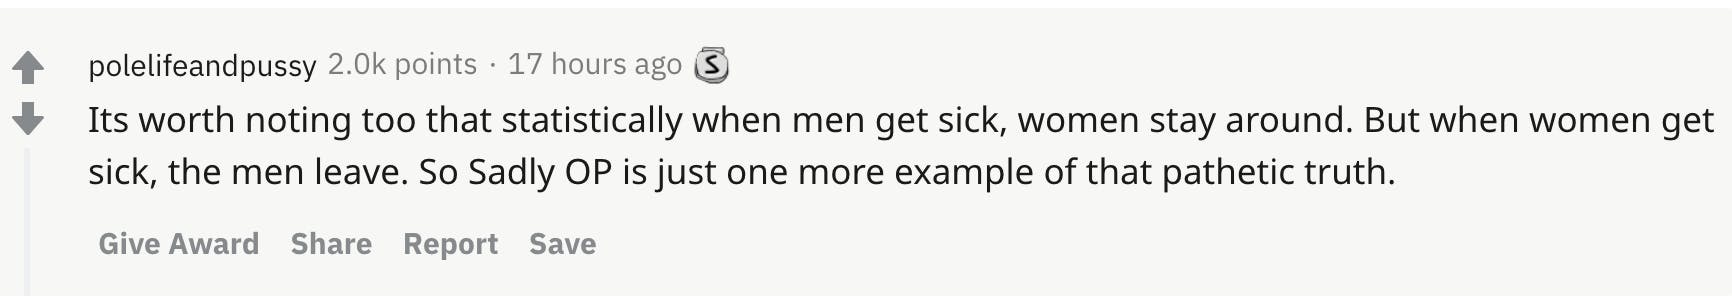 Its worth noting too that statistically when men get sick, women stay around. But when women get sick, the men leave. So Sadly OP is just one more example of that pathetic truth.